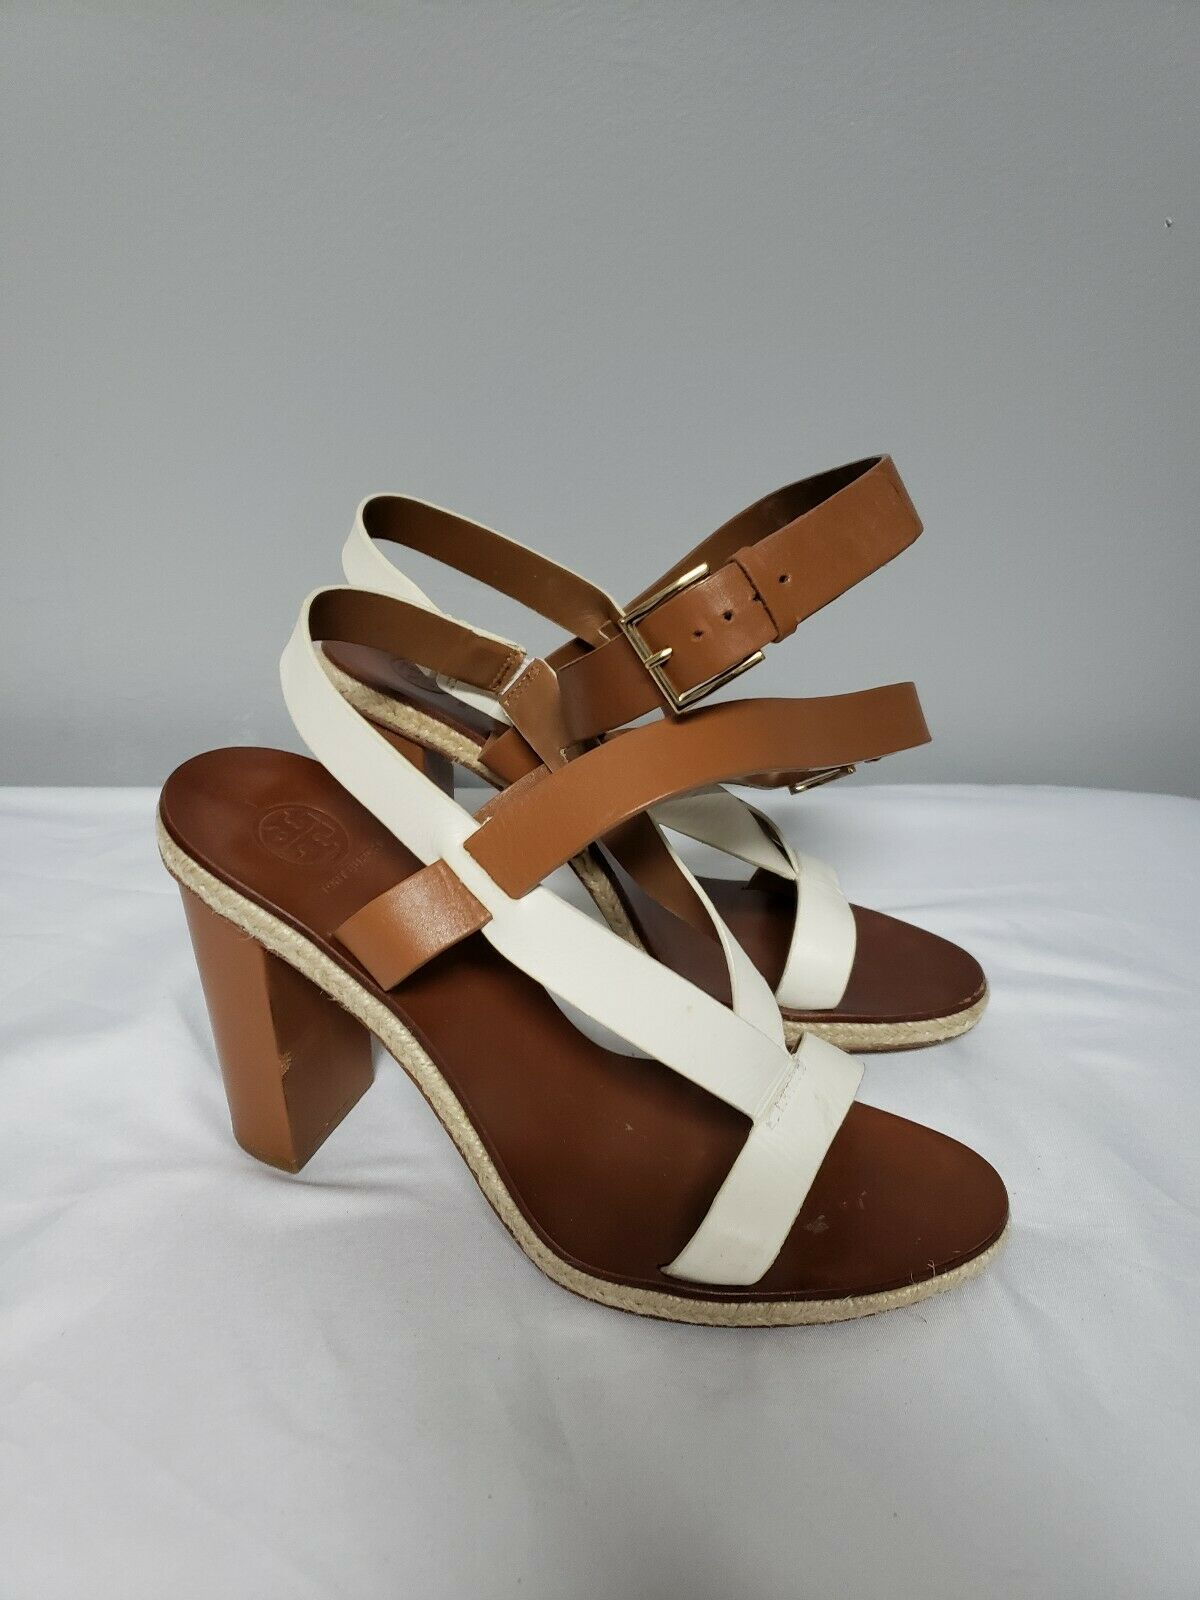 Tory Burch Wouomo Leather Straps Sandals Ivory Dimensione 9.5 Block Stacked Heel